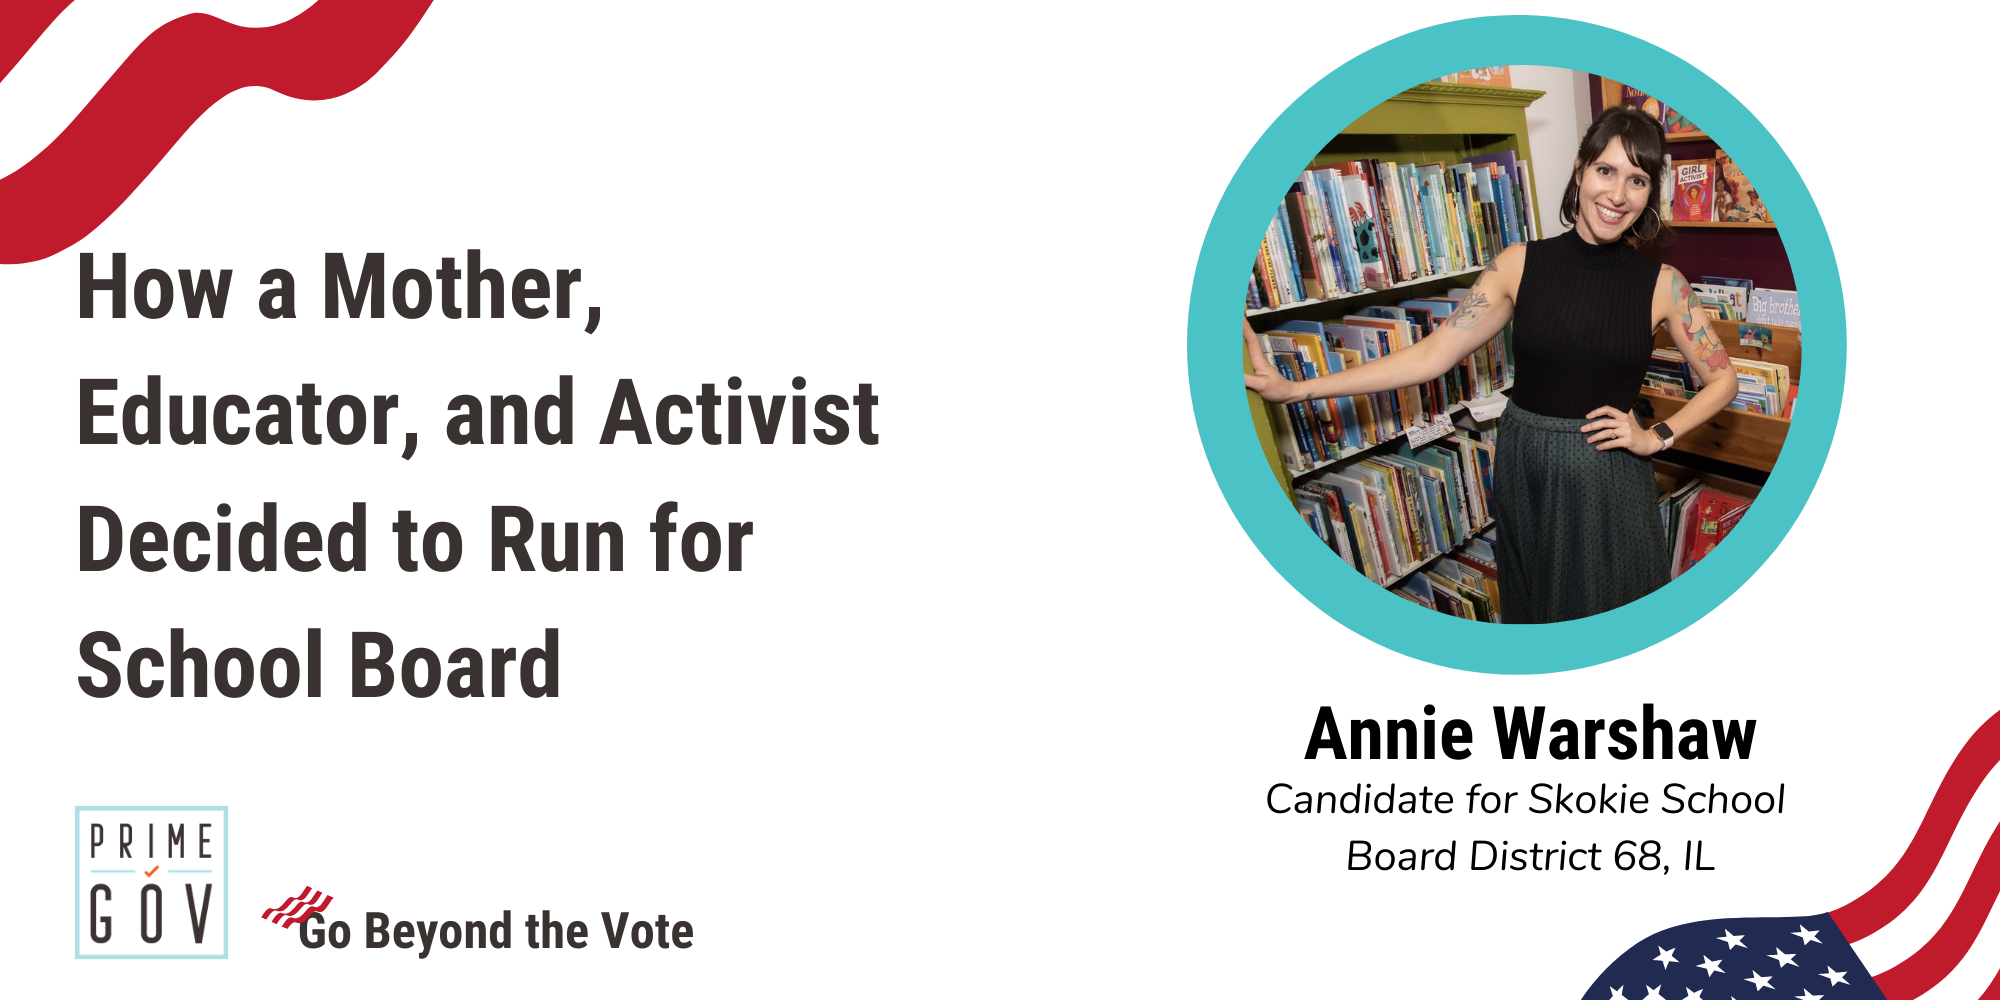 How aMother, Educator, and Activist Decided to Run forSchool Board